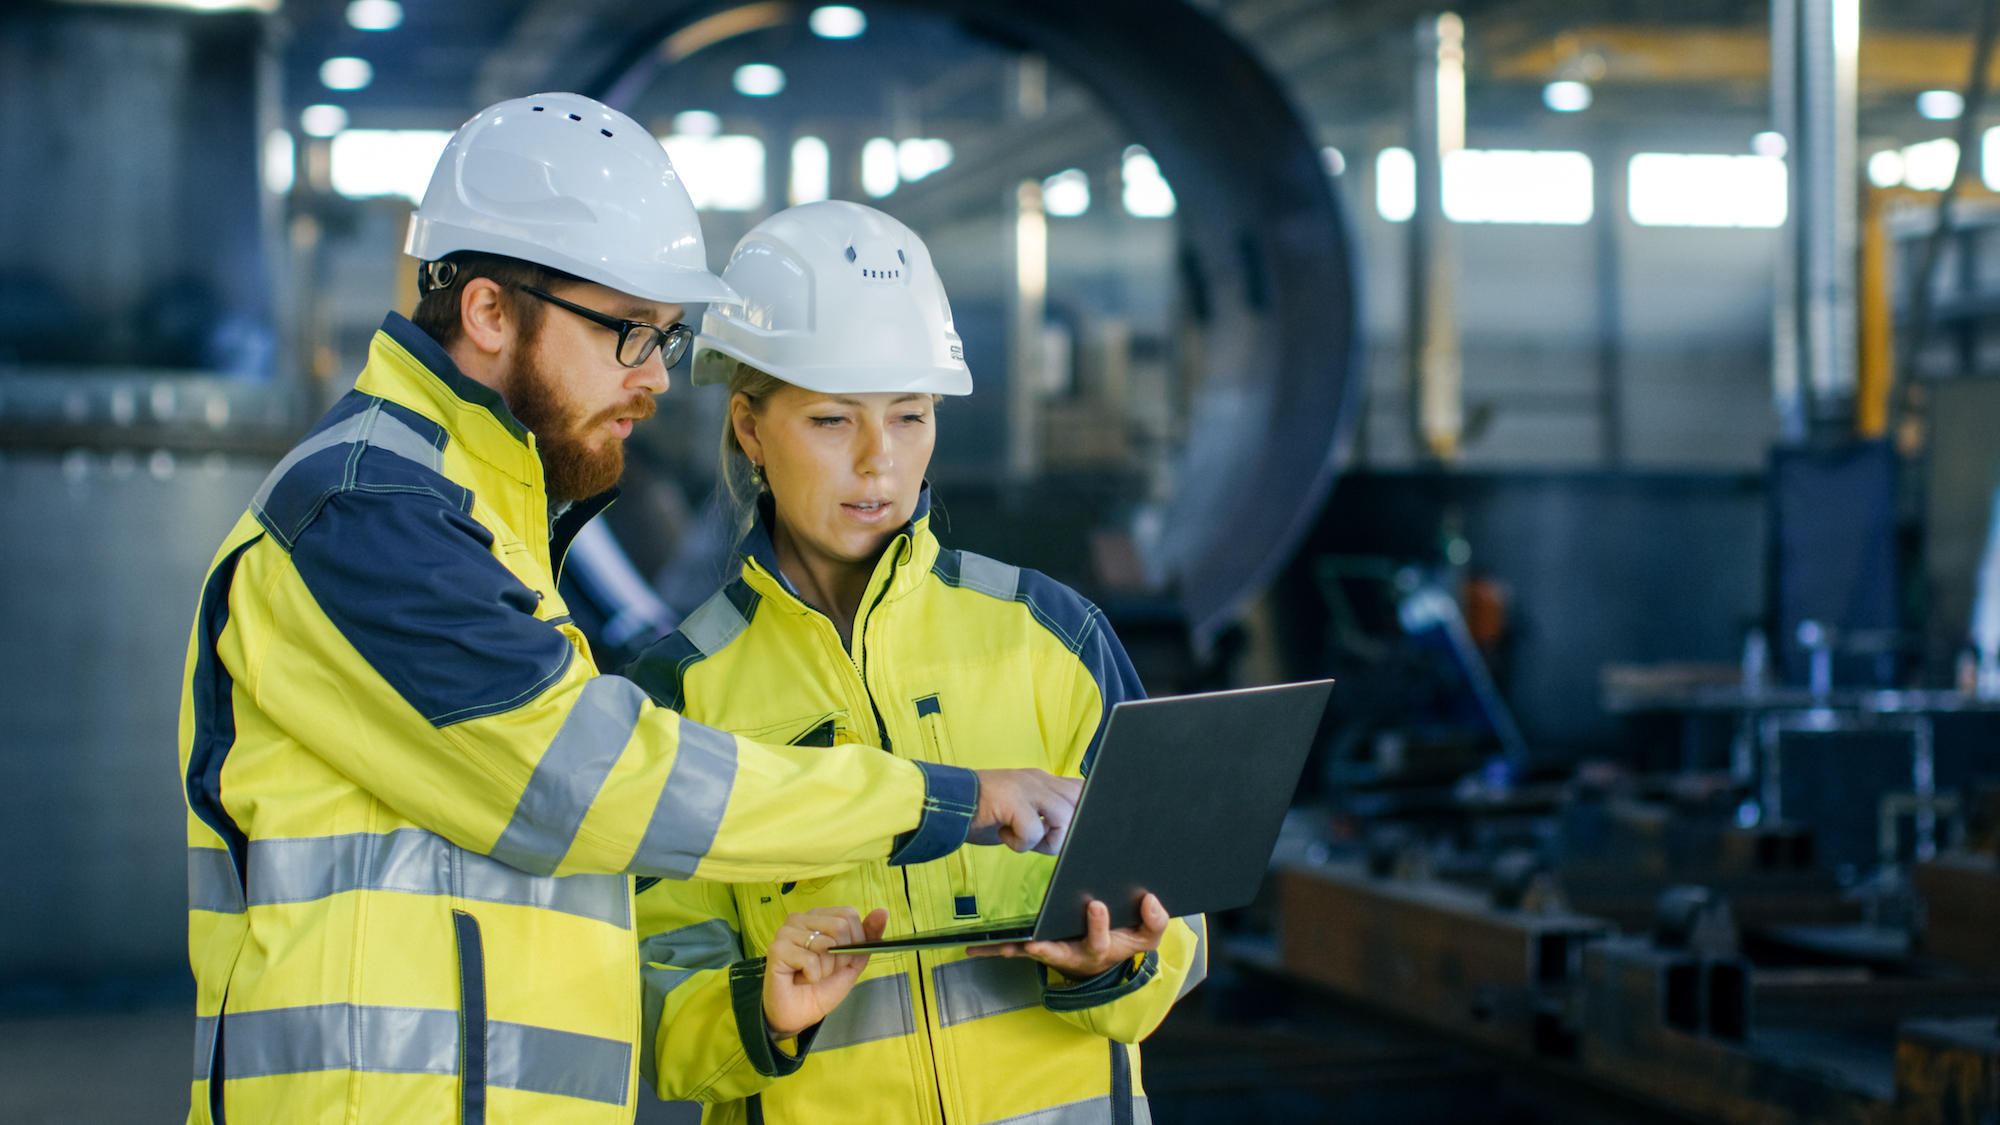 ISO 45001 – A New Standard for Workplace Safety